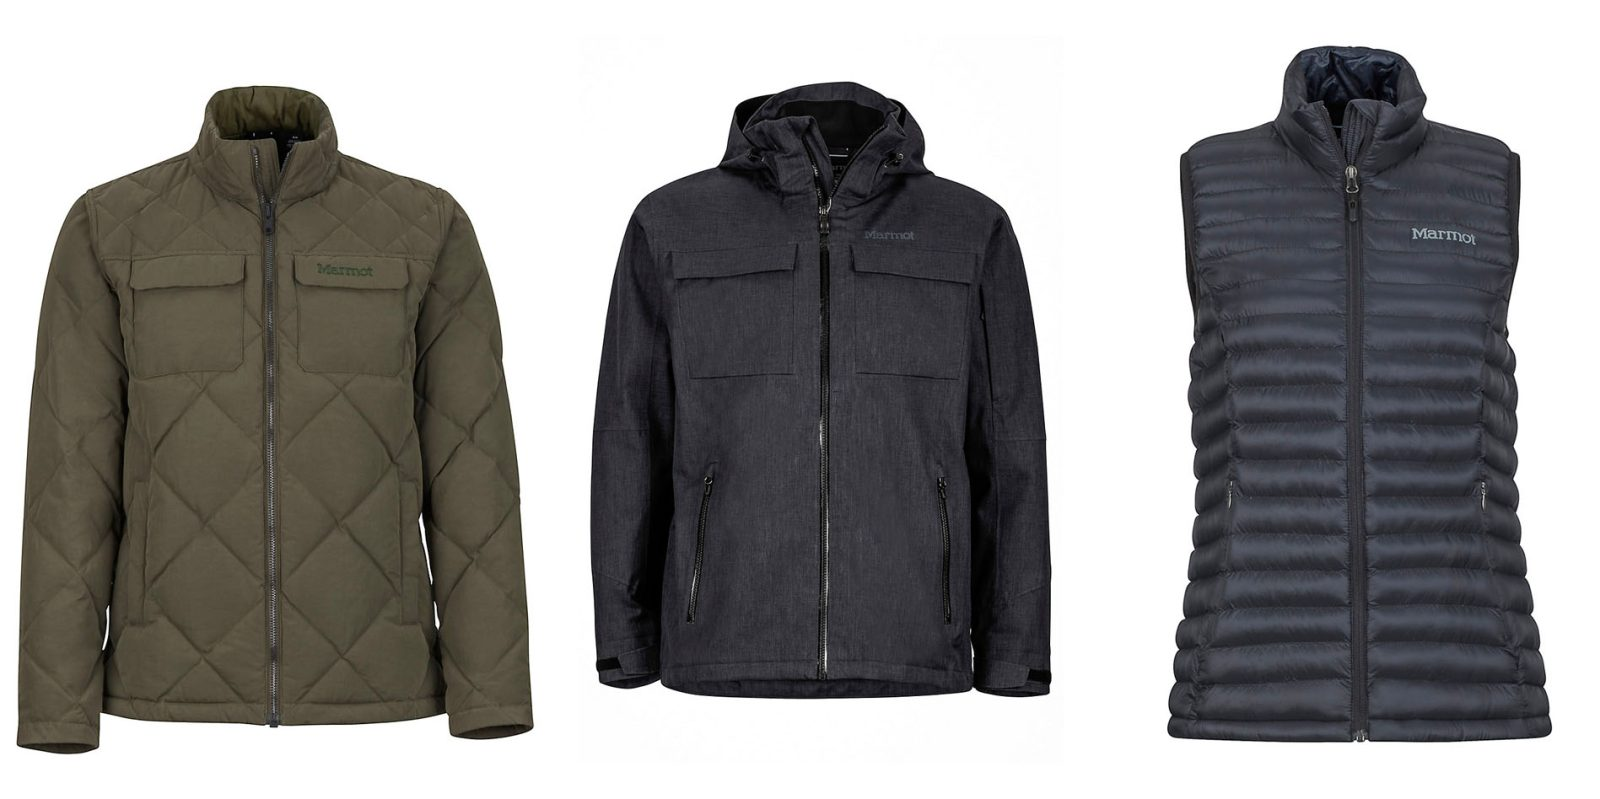 Marmot's One-Day Flash Sale offers an extra 25% off clearance from $30 shipped